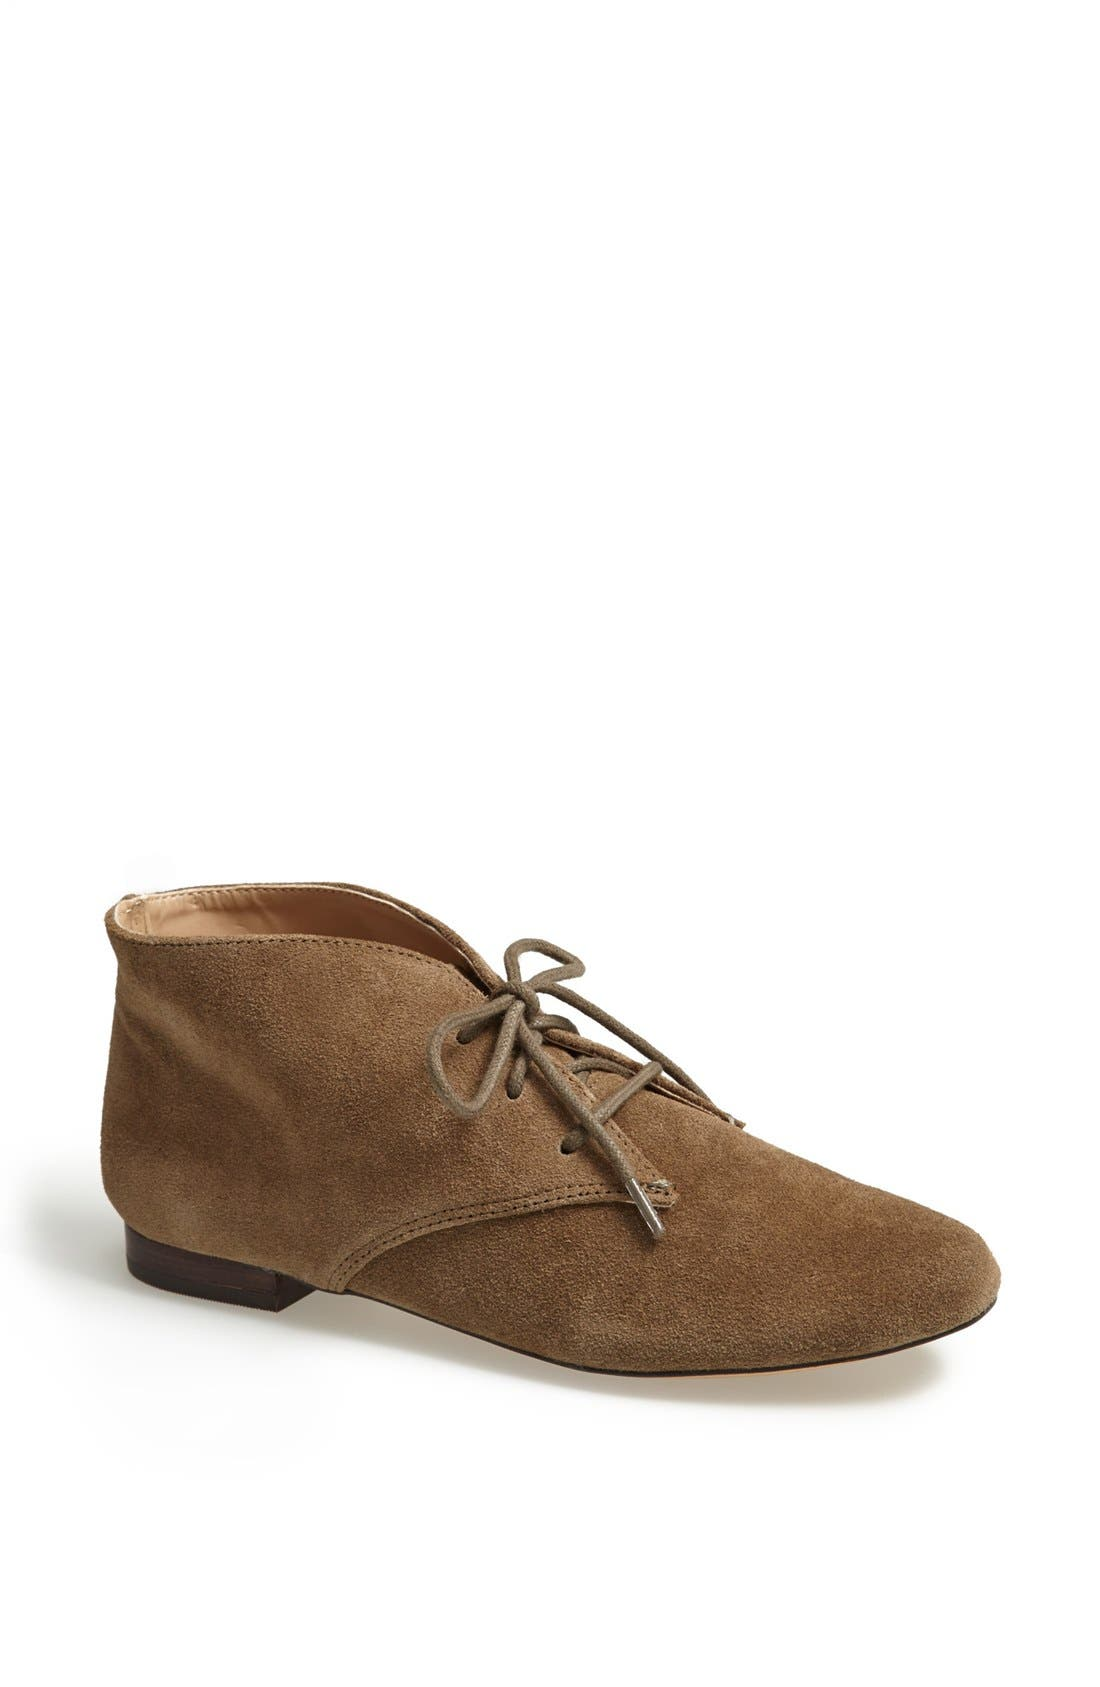 Alternate Image 1 Selected - Sole Society 'Chelsee' Bootie